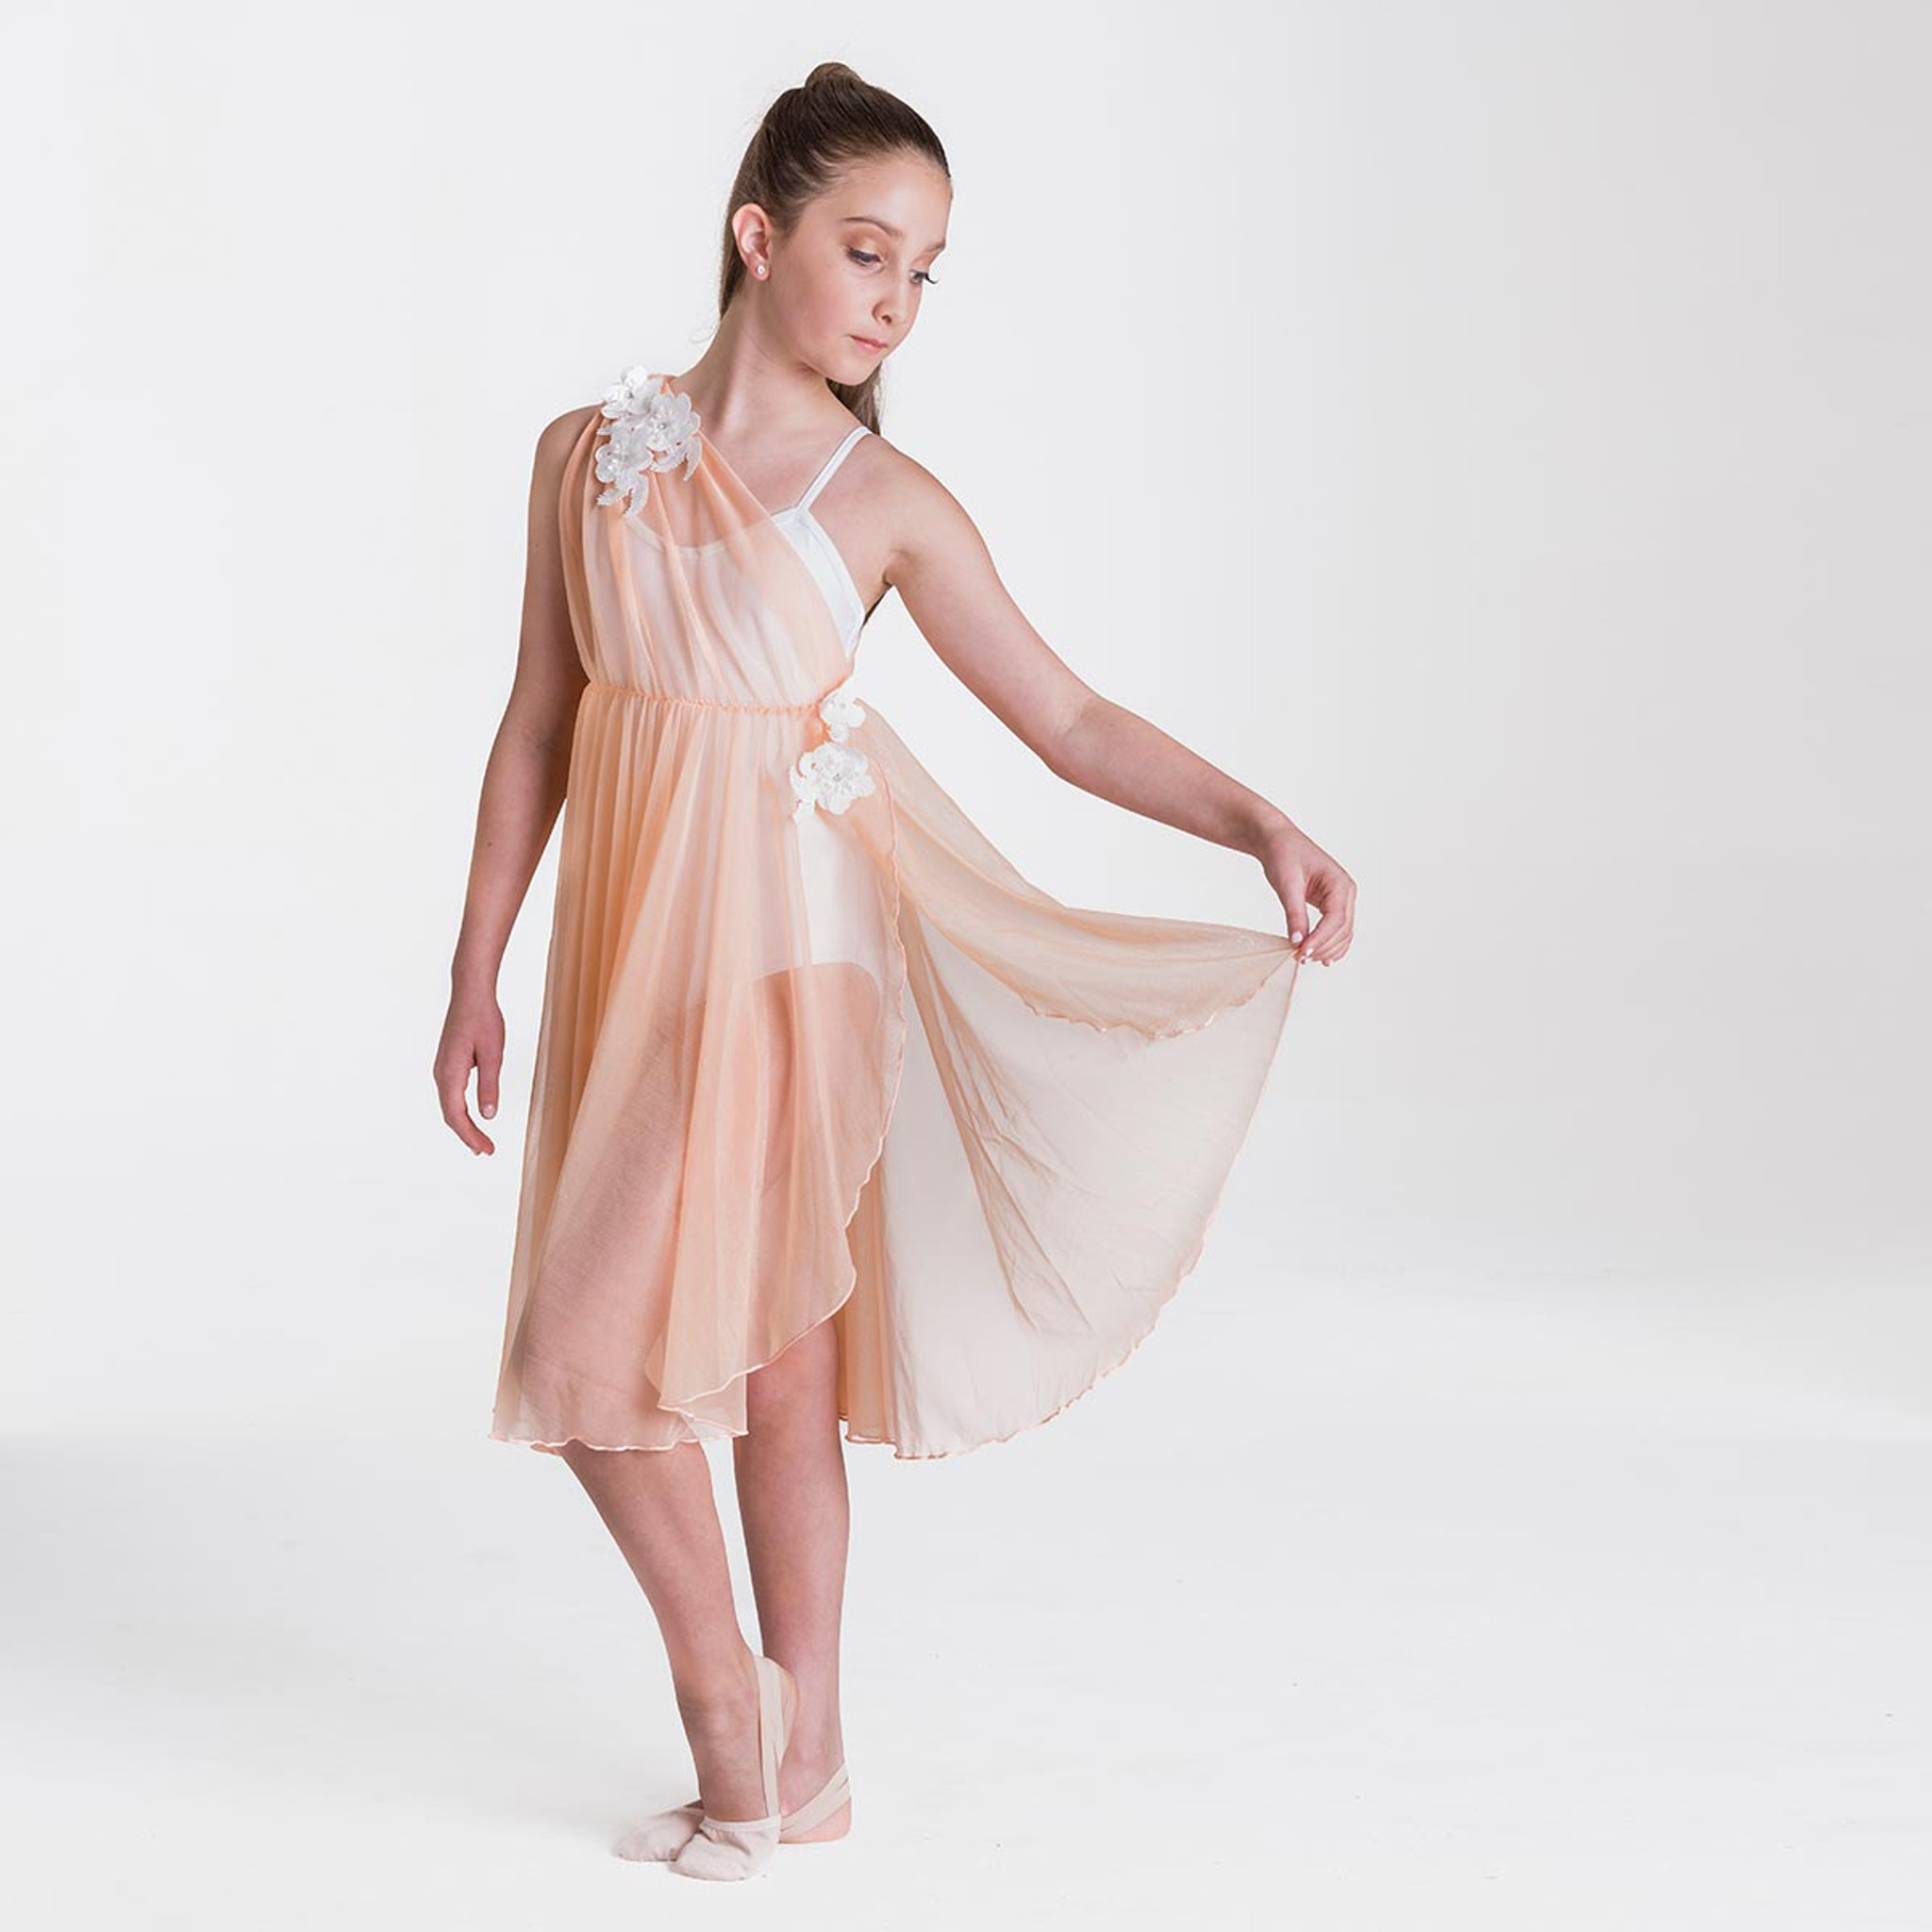 Studio 7 Dancewear Grecian Lyrical Dress Girls Apricot